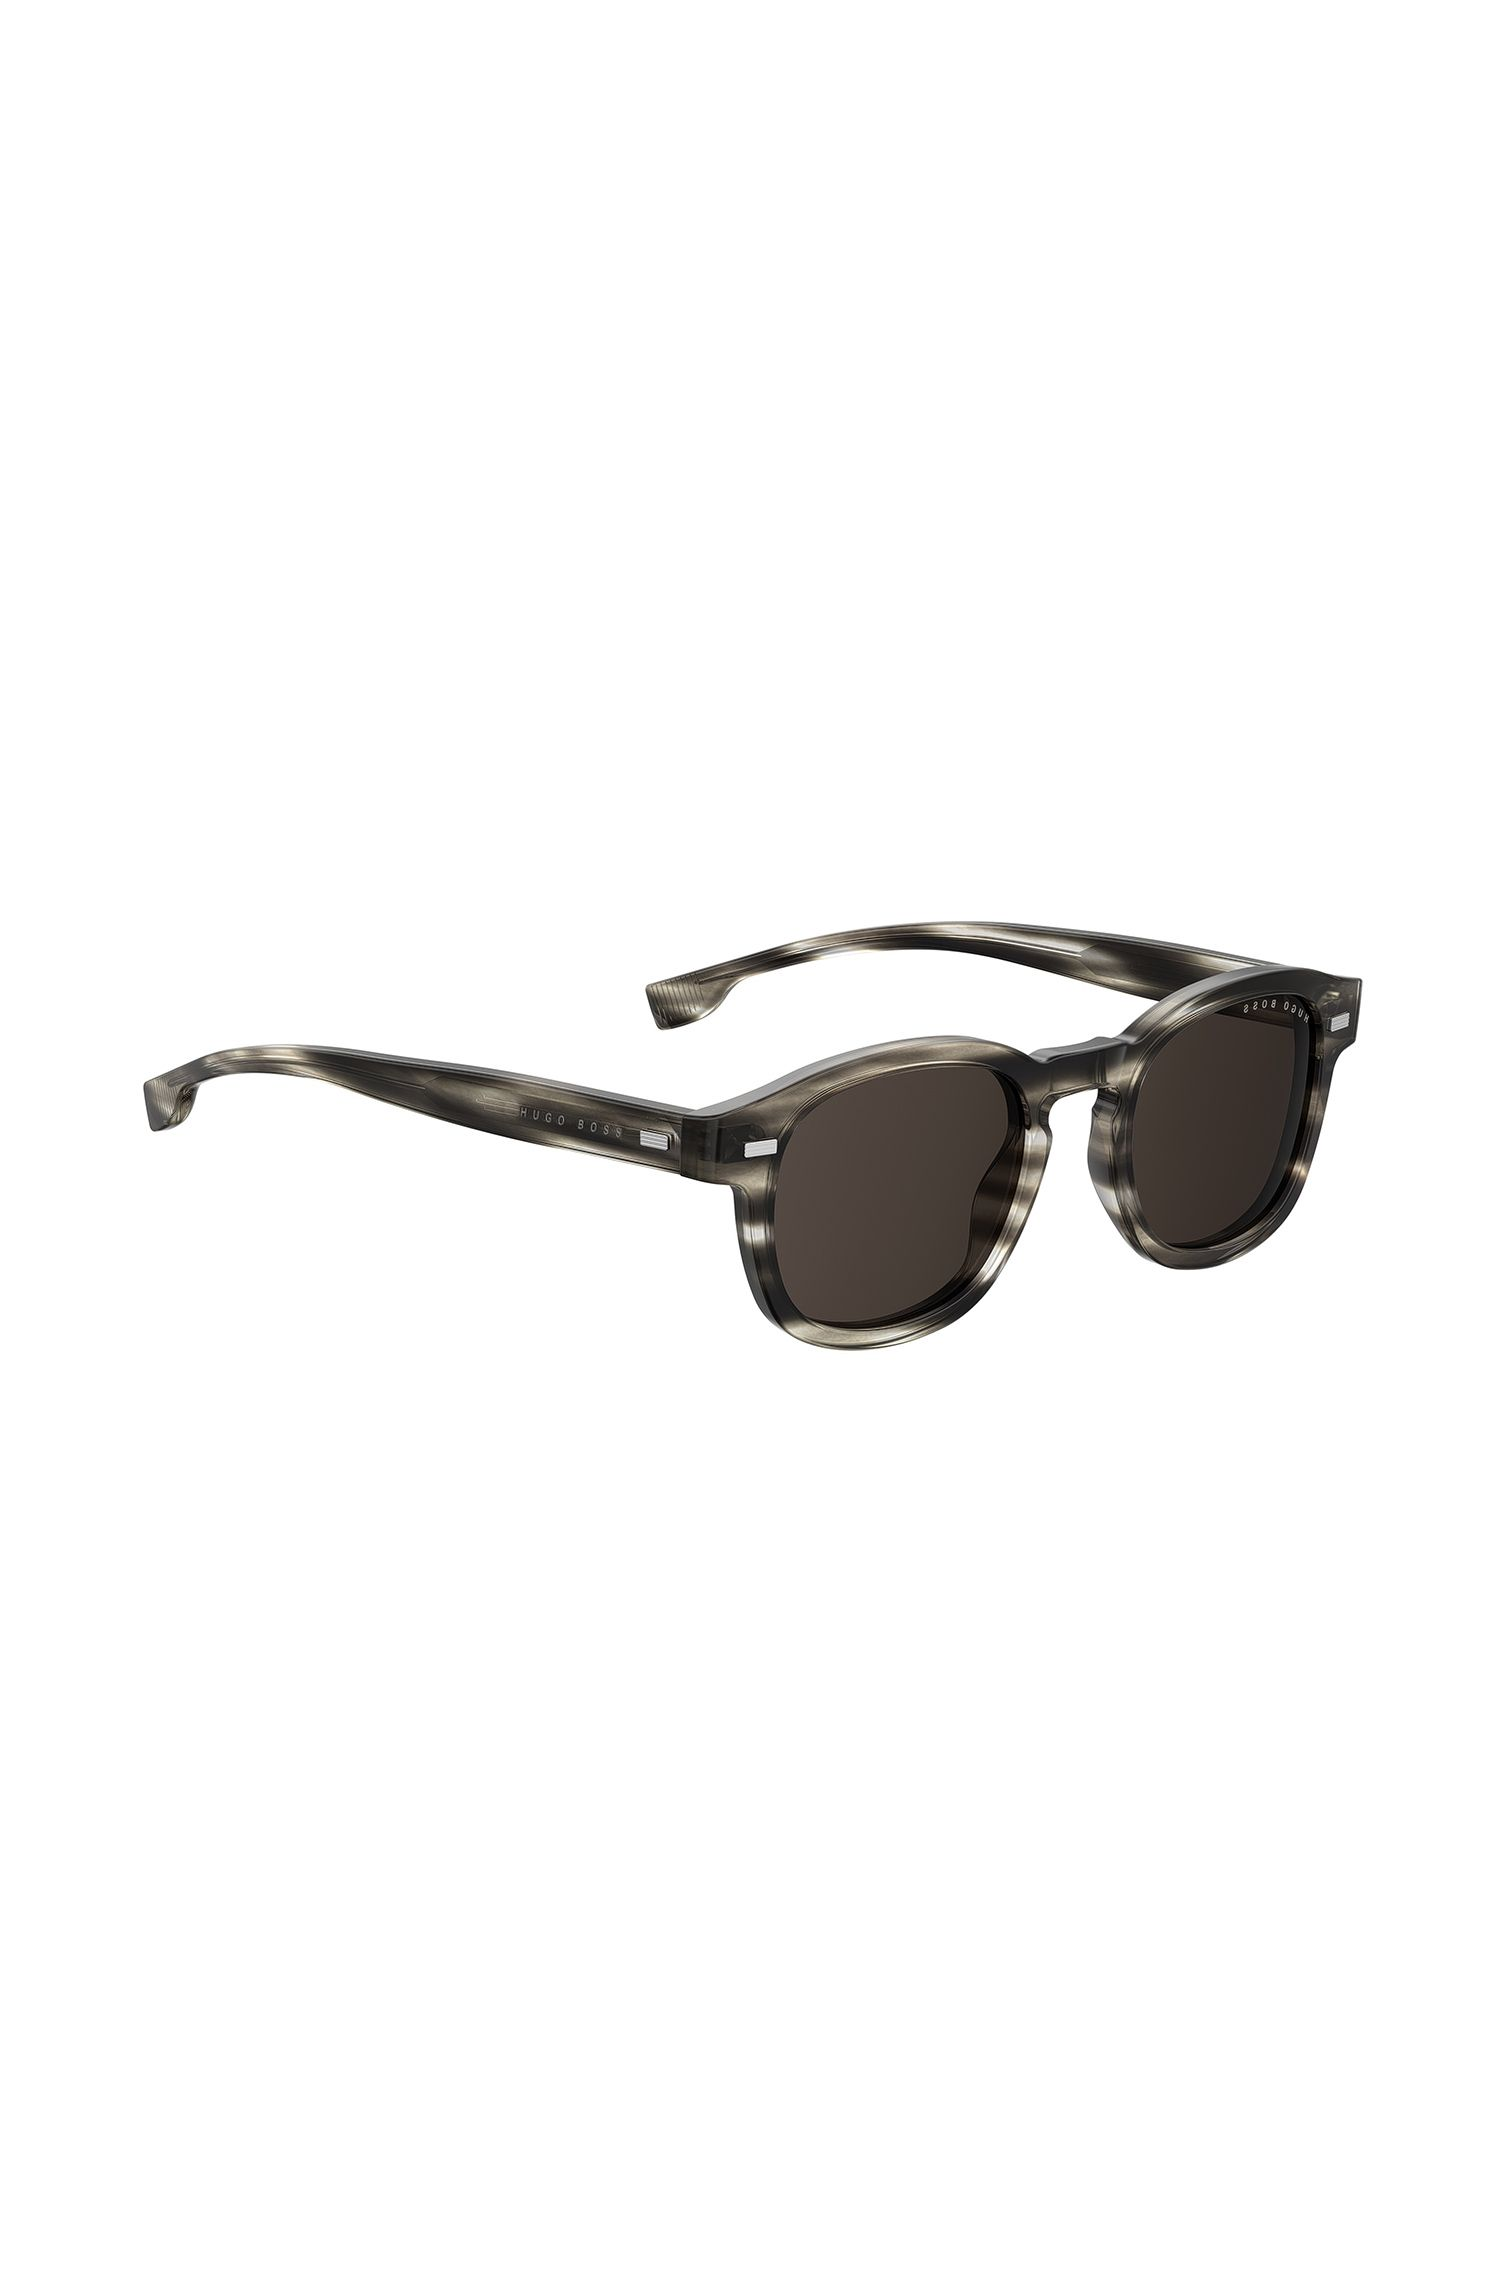 Keyhole-nose sunglasses in monochrome Havana acetate, Patterned